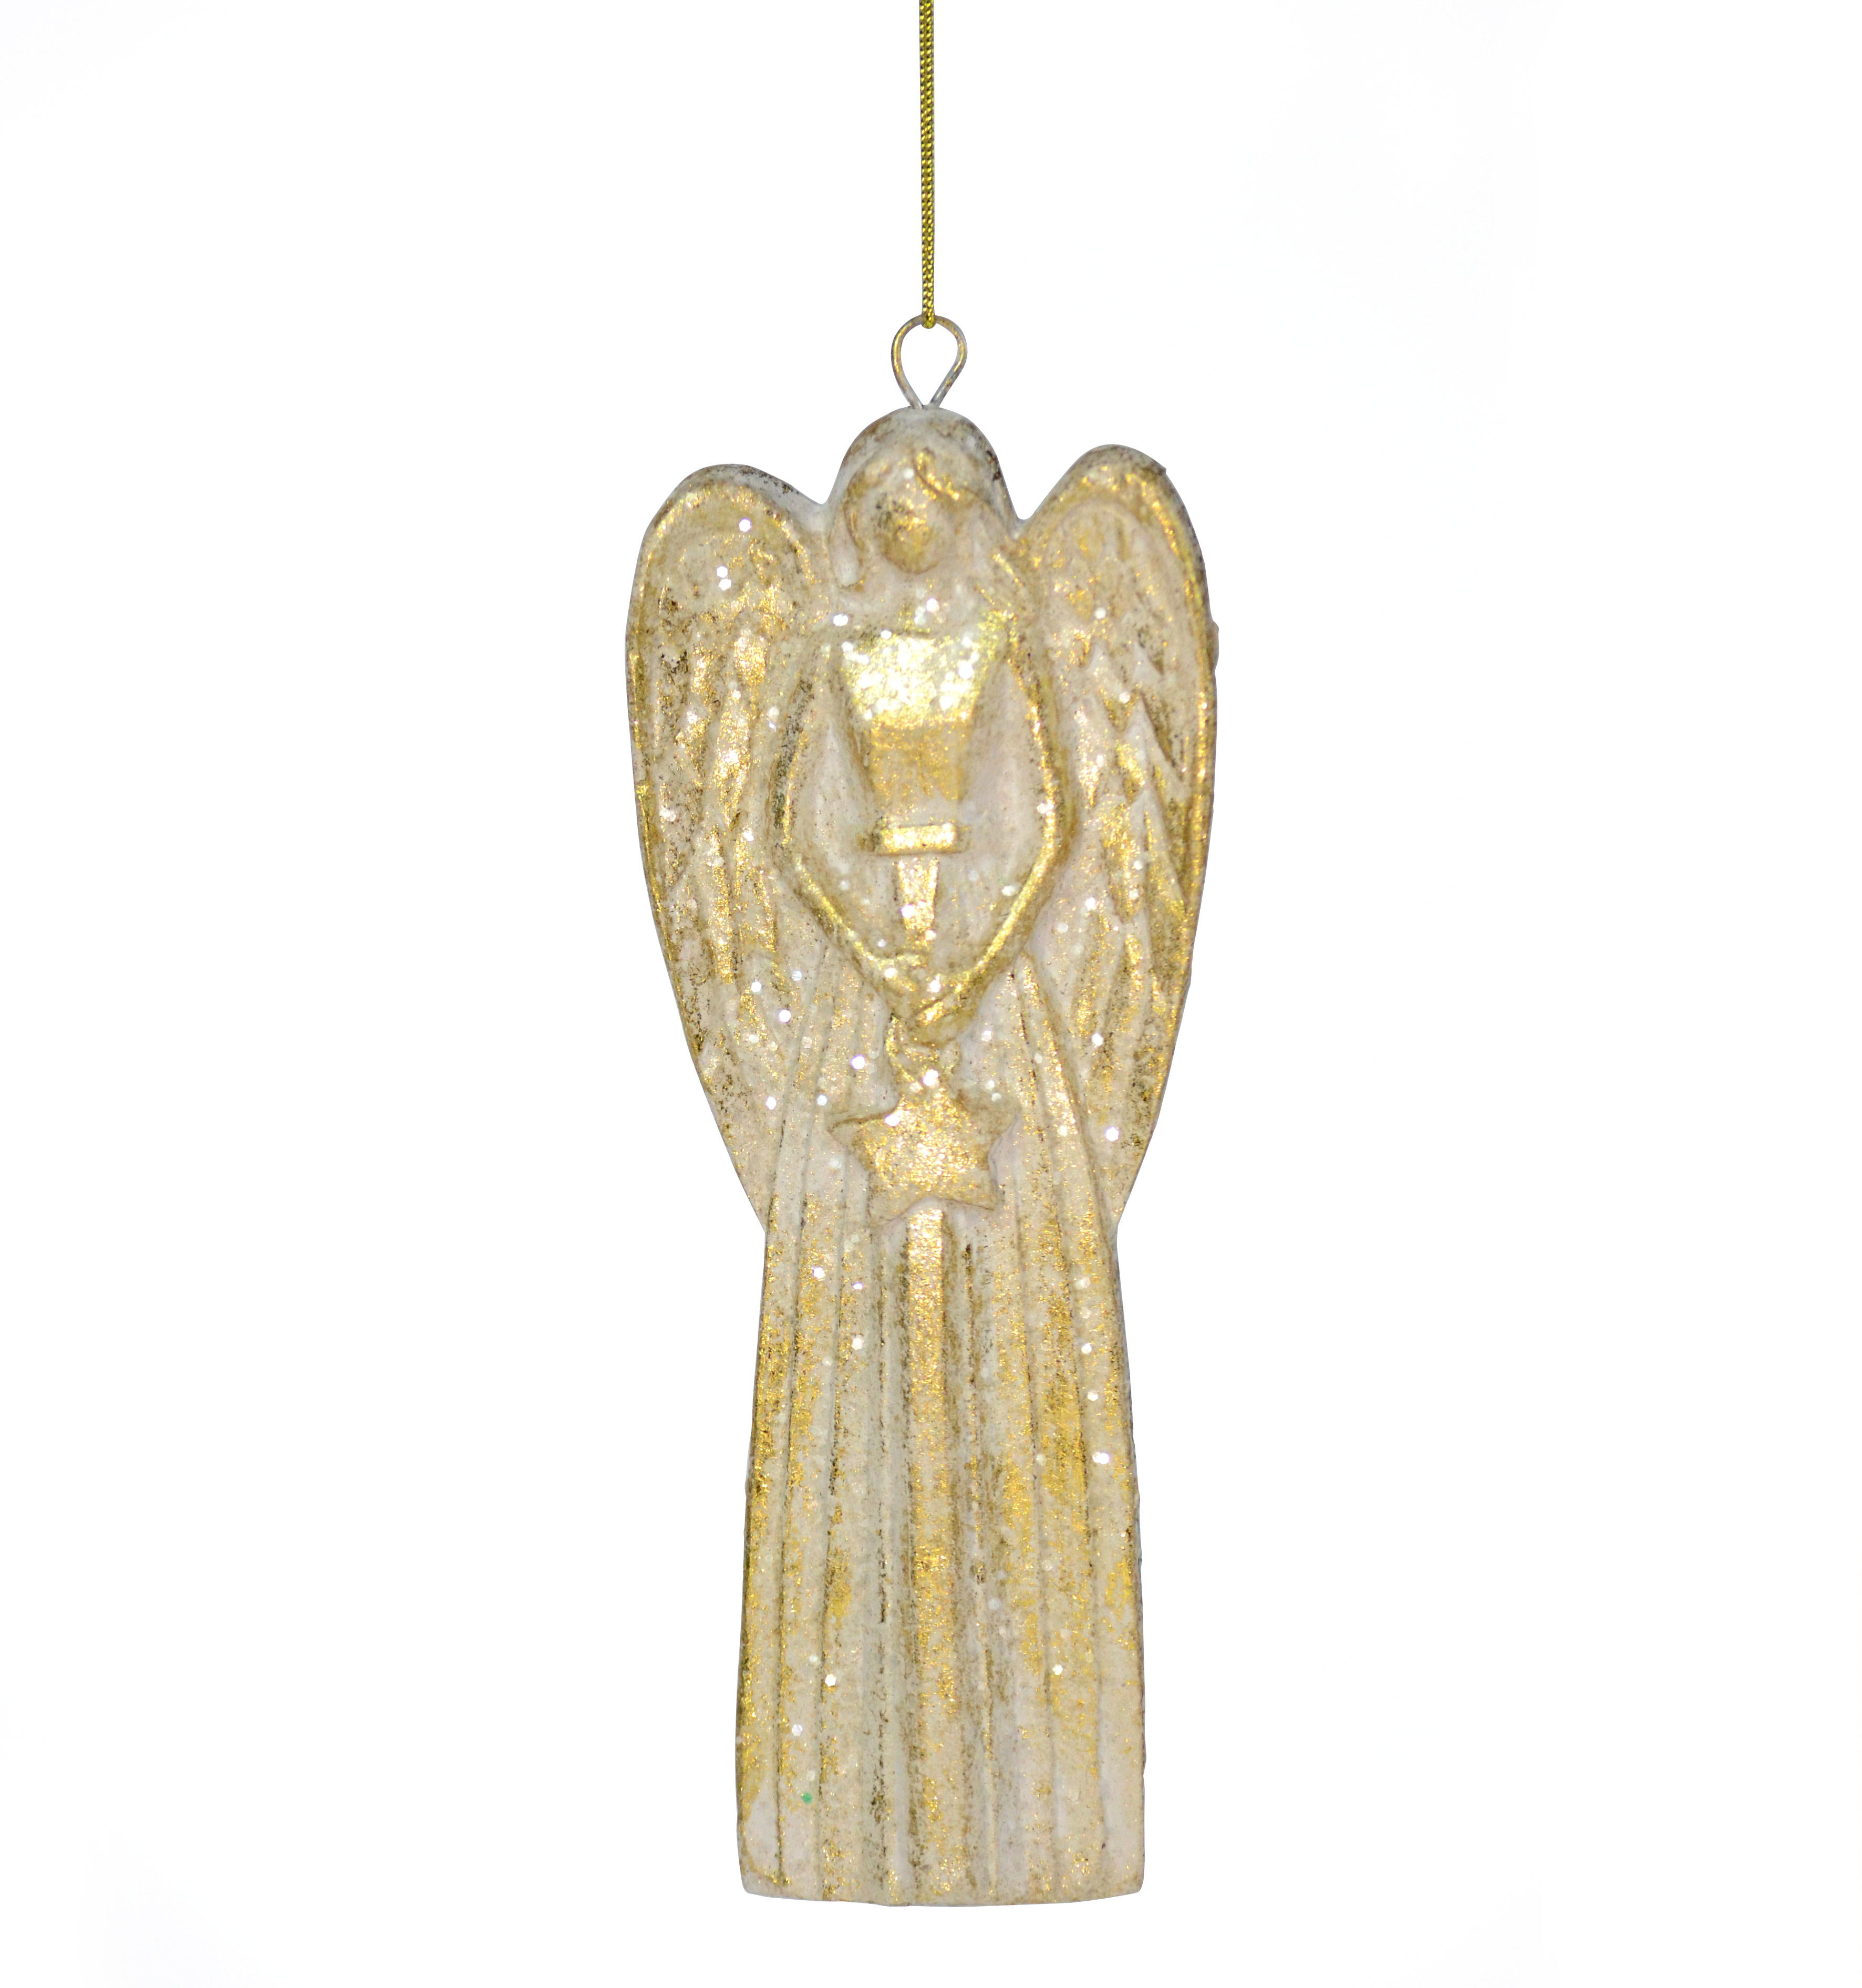 Gold Angel Christmas Hanging Ornament